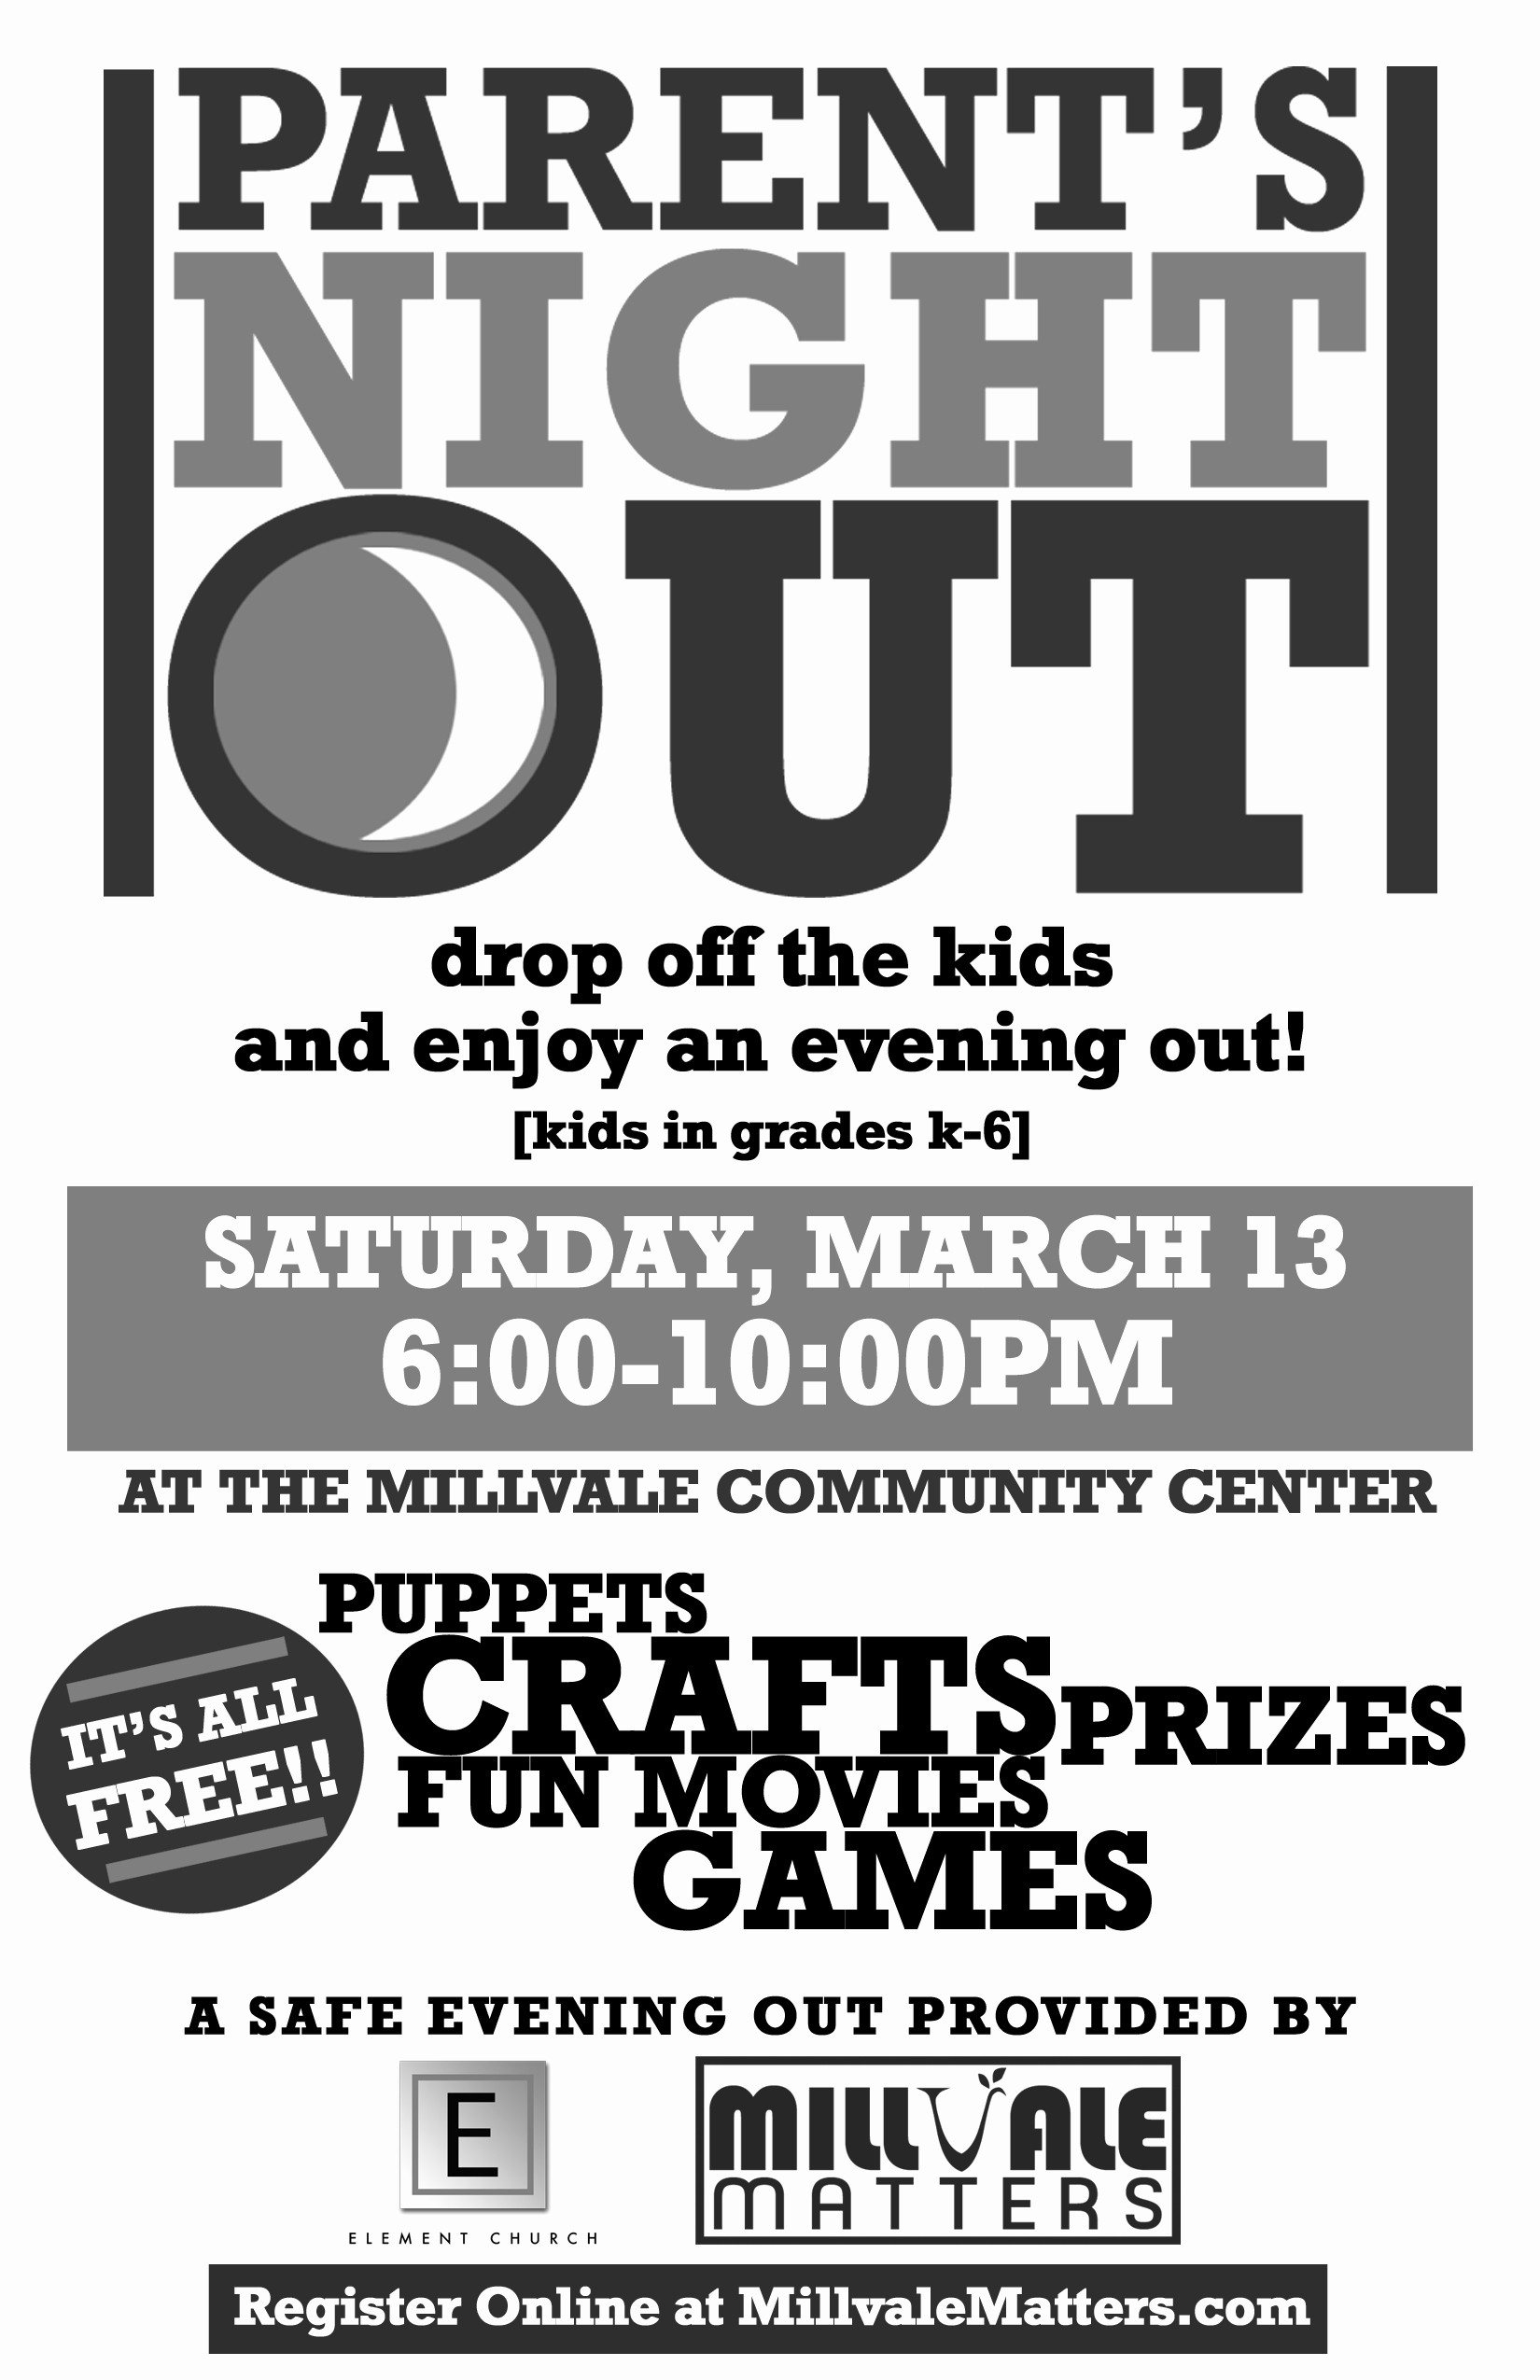 Parent Night Out Flyer Template Unique Millvale Matters Caring for the People Of Millvale